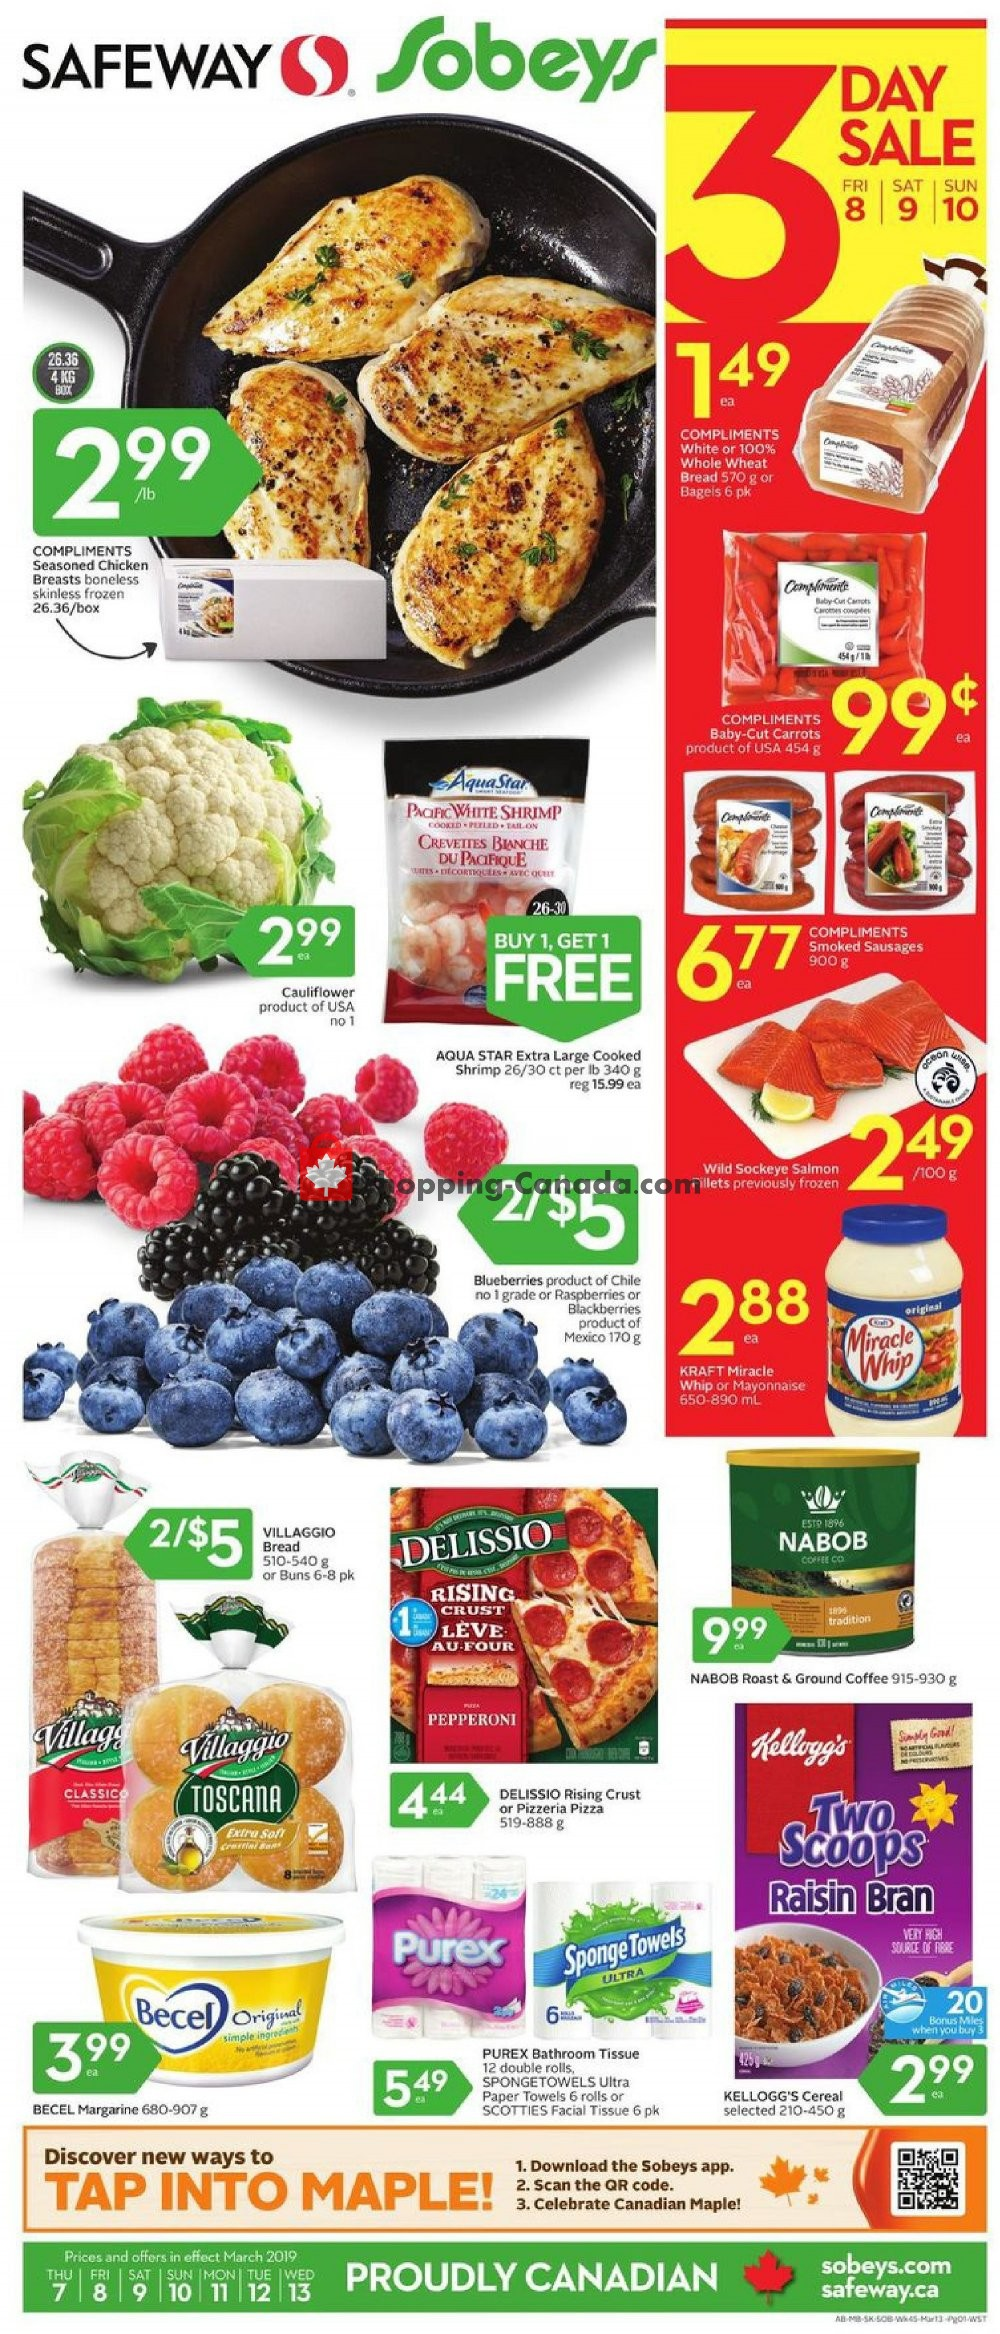 Flyer Safeway Canada - from Thursday March 7, 2019 to Wednesday March 13, 2019